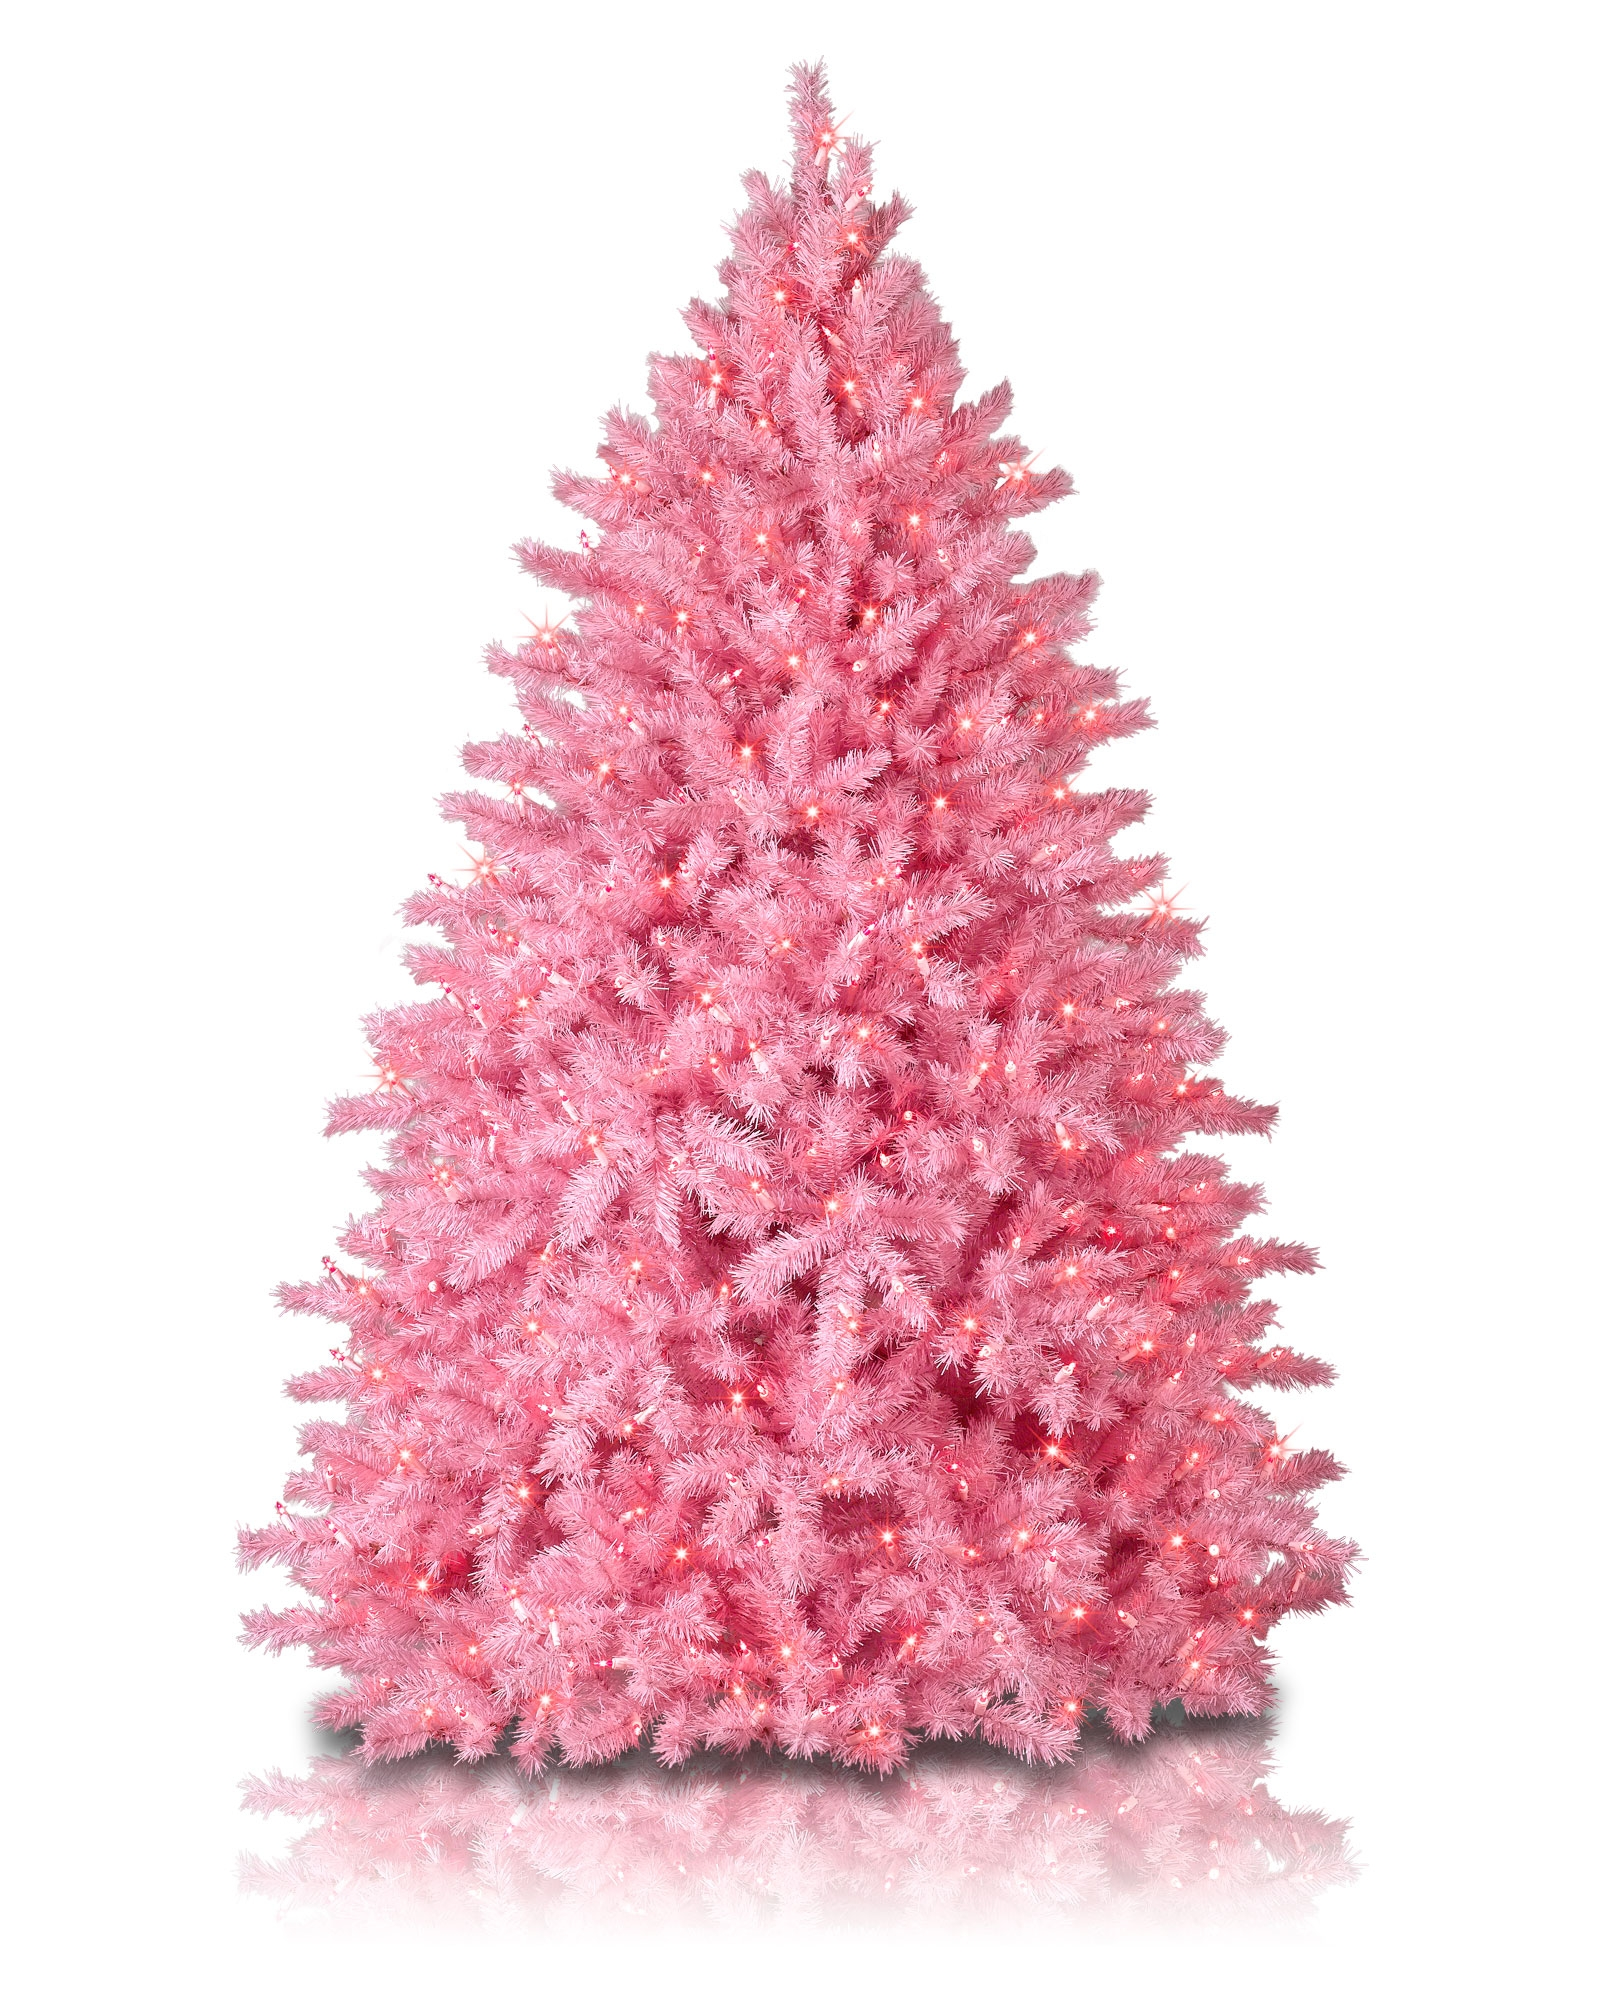 Pink Christmas Tree Decorations Uk.Pretty In Pink Christmas Tree Treetopia Uk